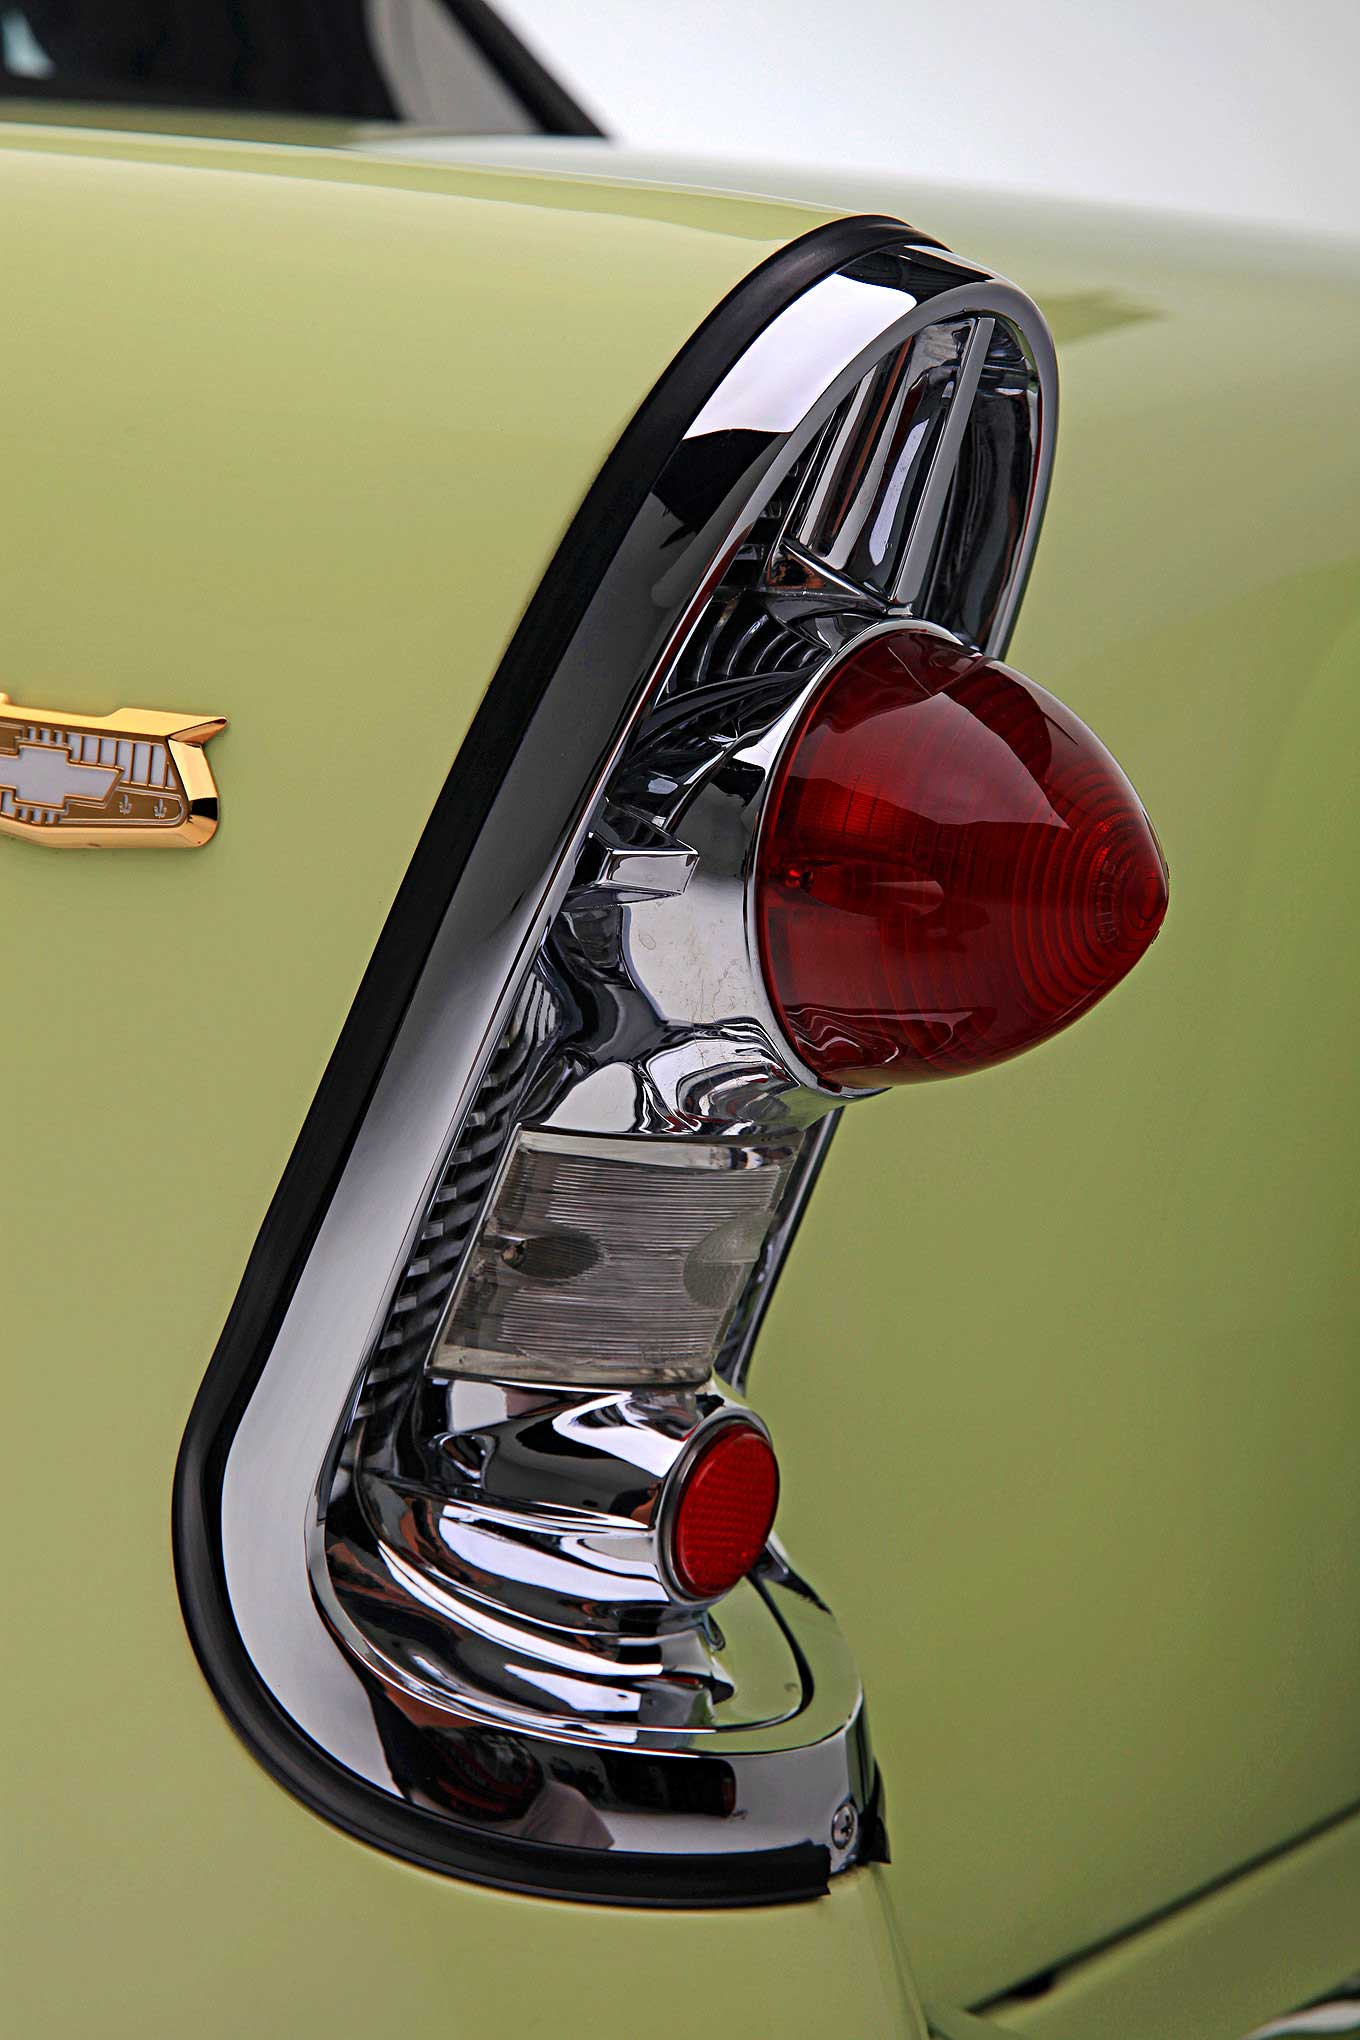 1956 chevy bel air tail lights wiring 1956 chevrolet bel air - the myth of the '56 1953 chevy bel air headlight switch wiring diagram